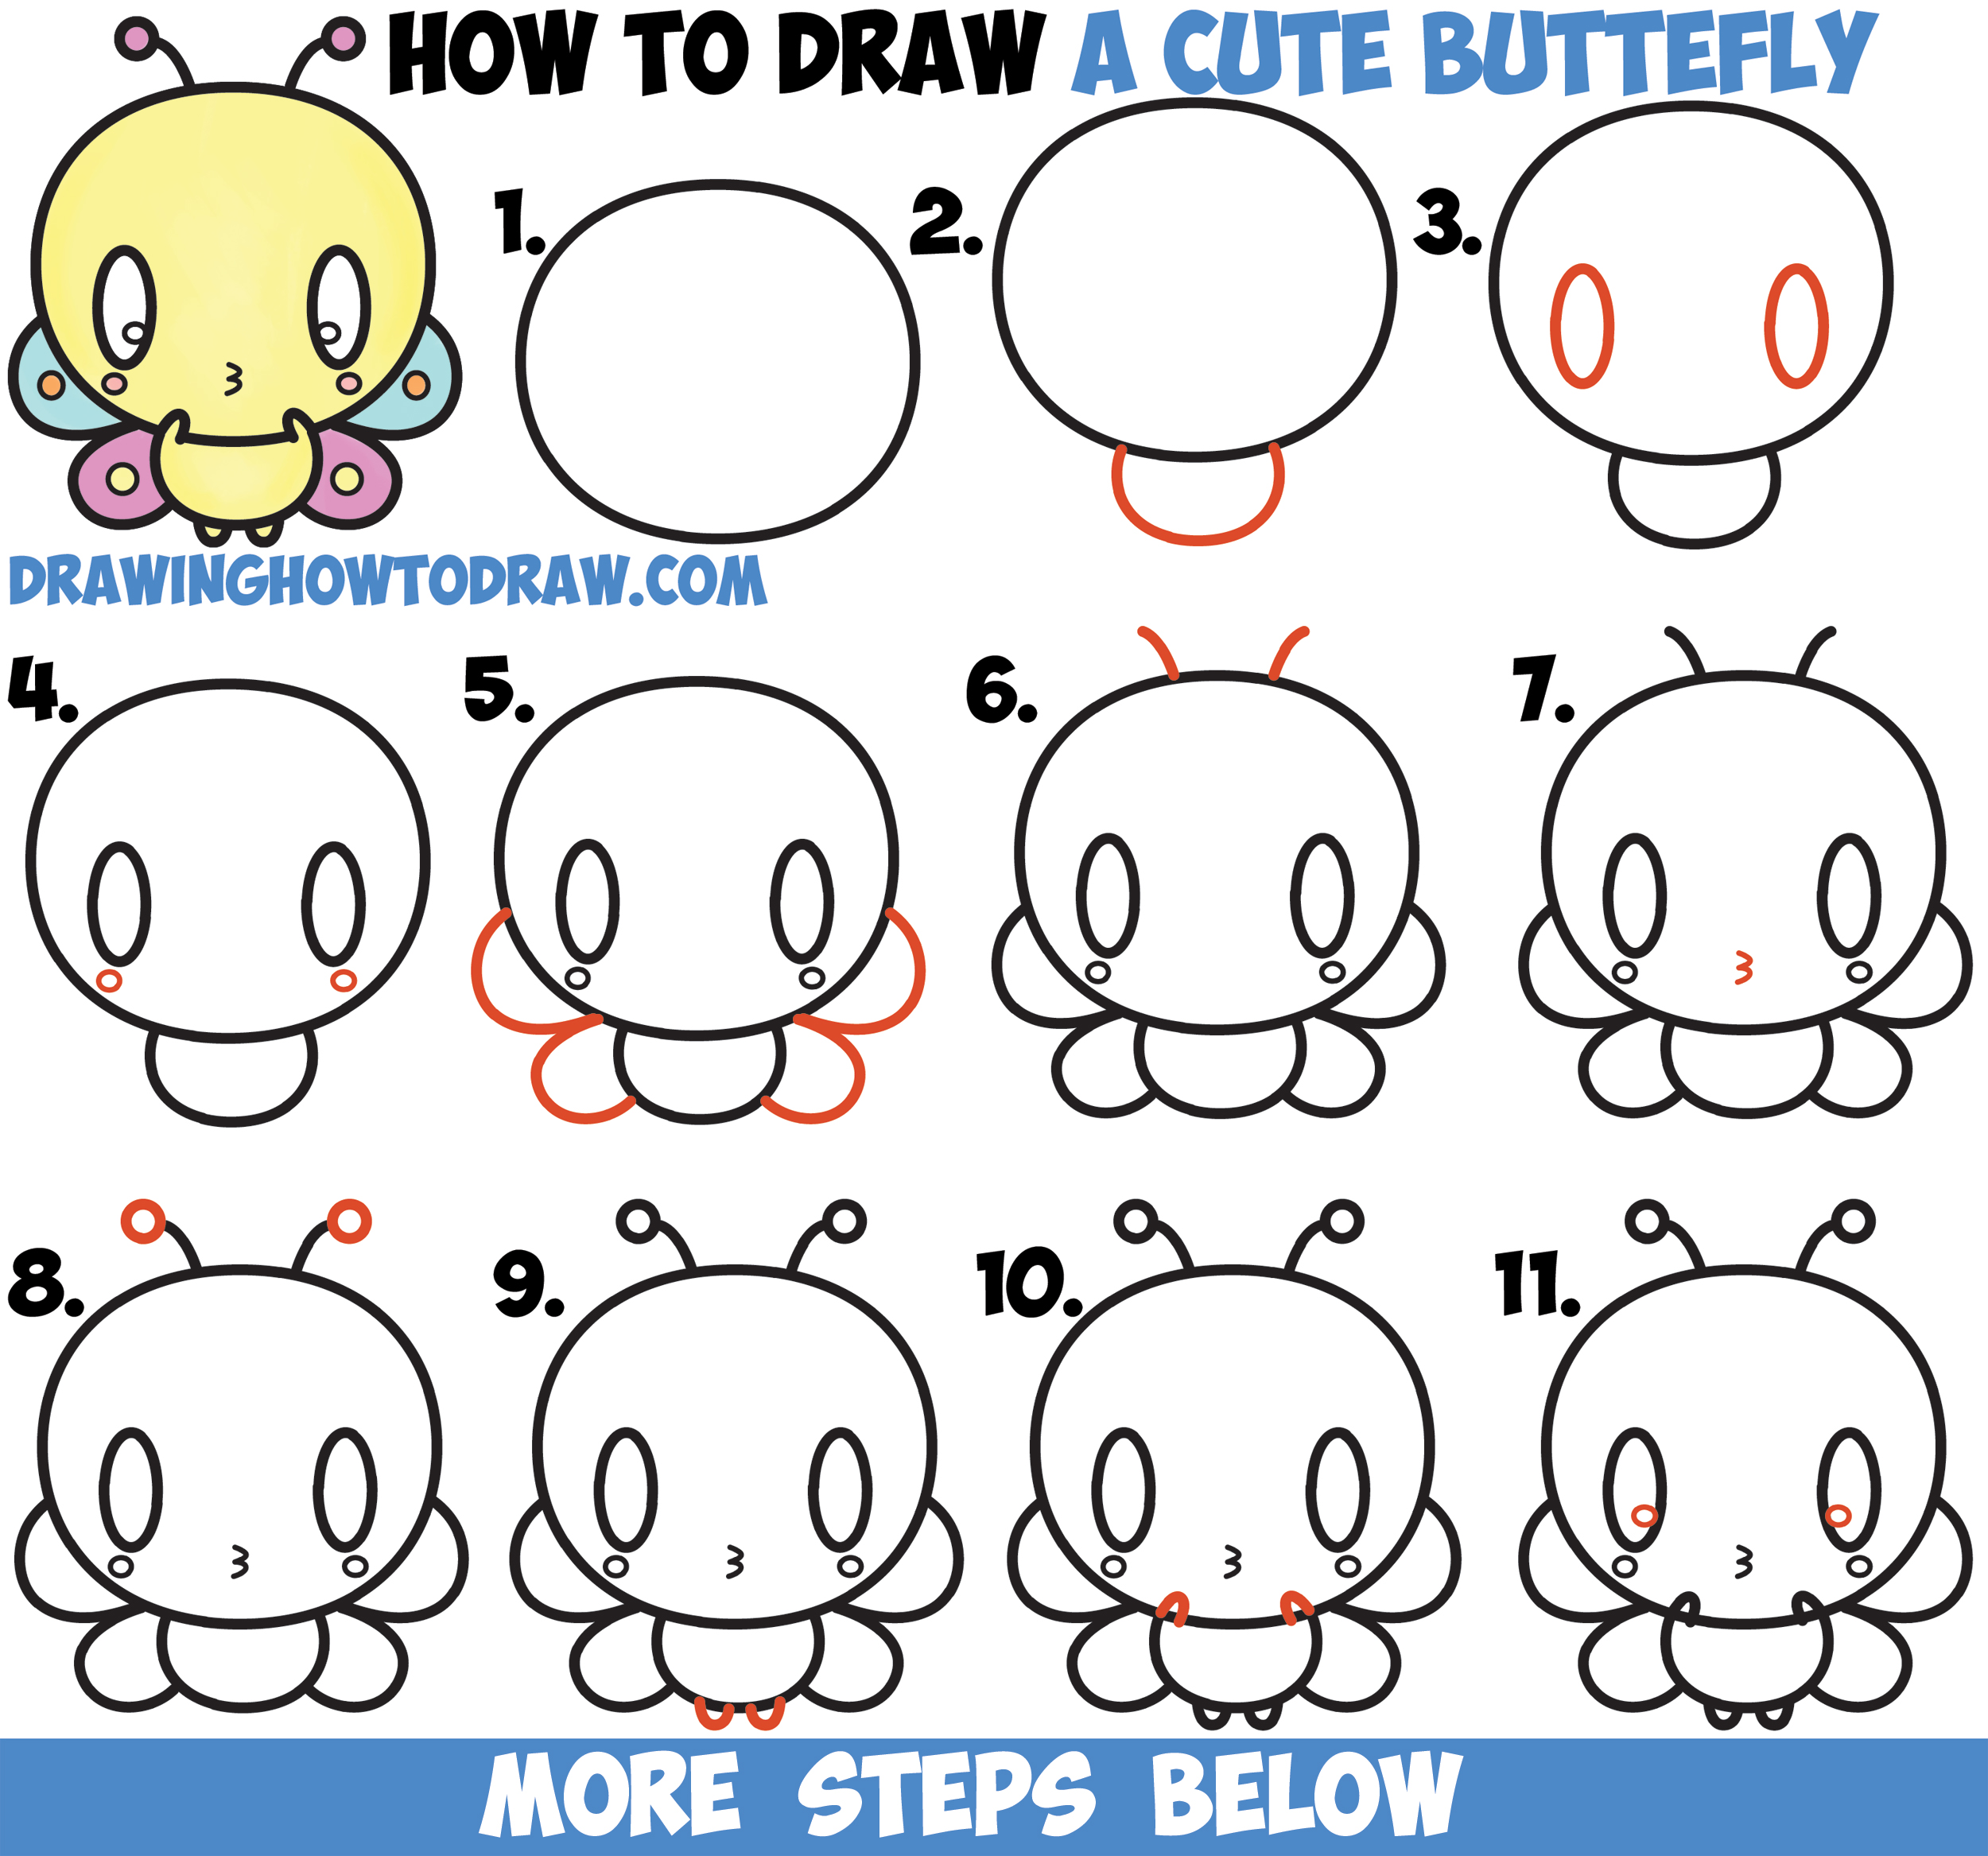 How to Draw Cute Kawaii Cartoon Butterfly Easy Step by Step Drawing Tutorial for Kids